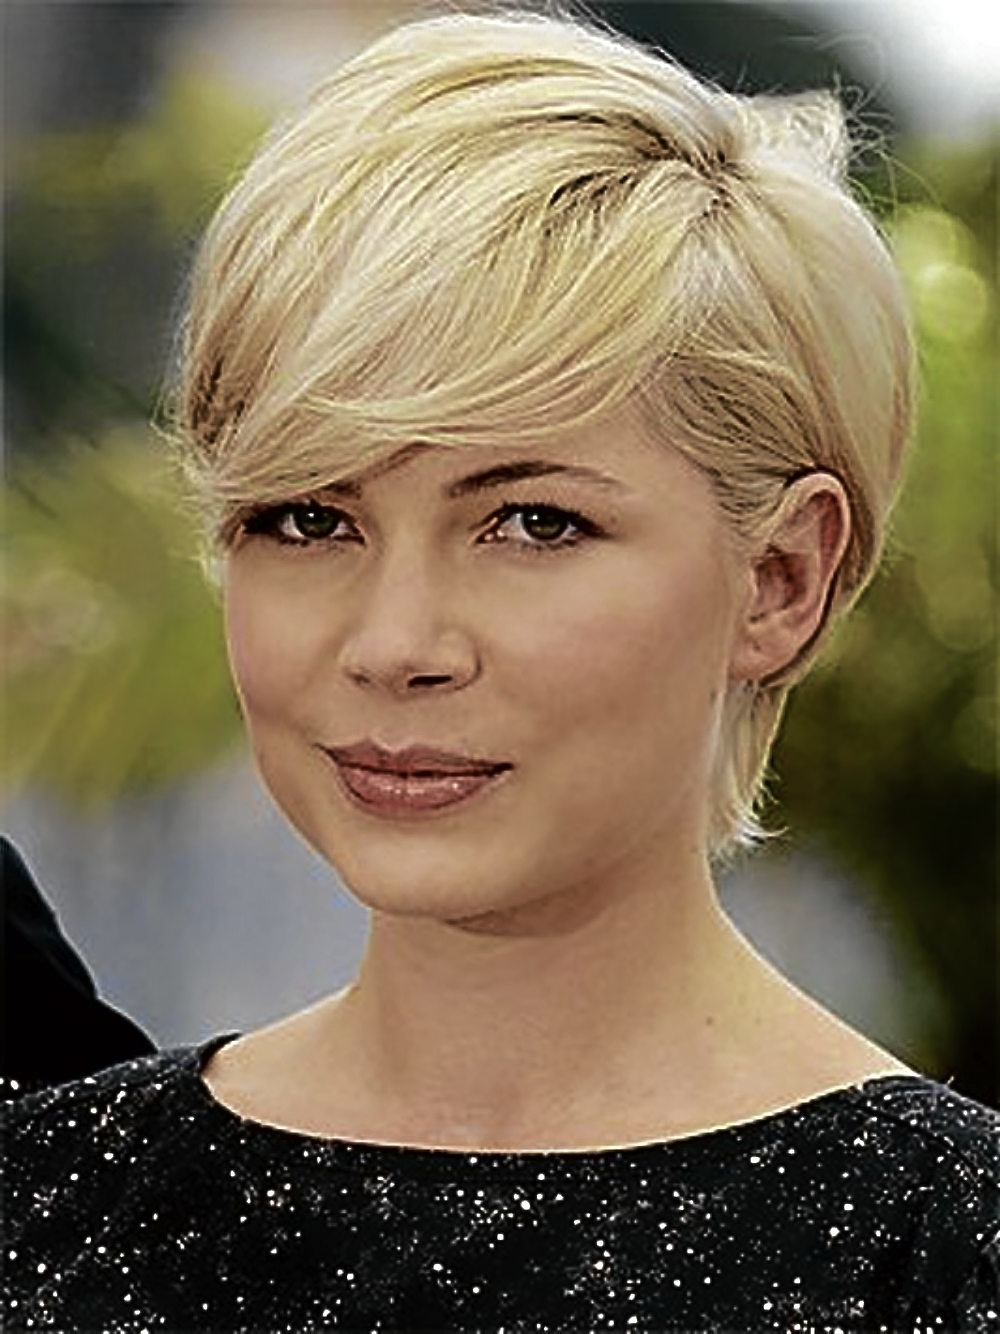 Short Pixie Haircuts For Thick Hair – Short And Cuts Hairstyles Inside Well Known Long Voluminous Pixie Hairstyles (View 16 of 20)